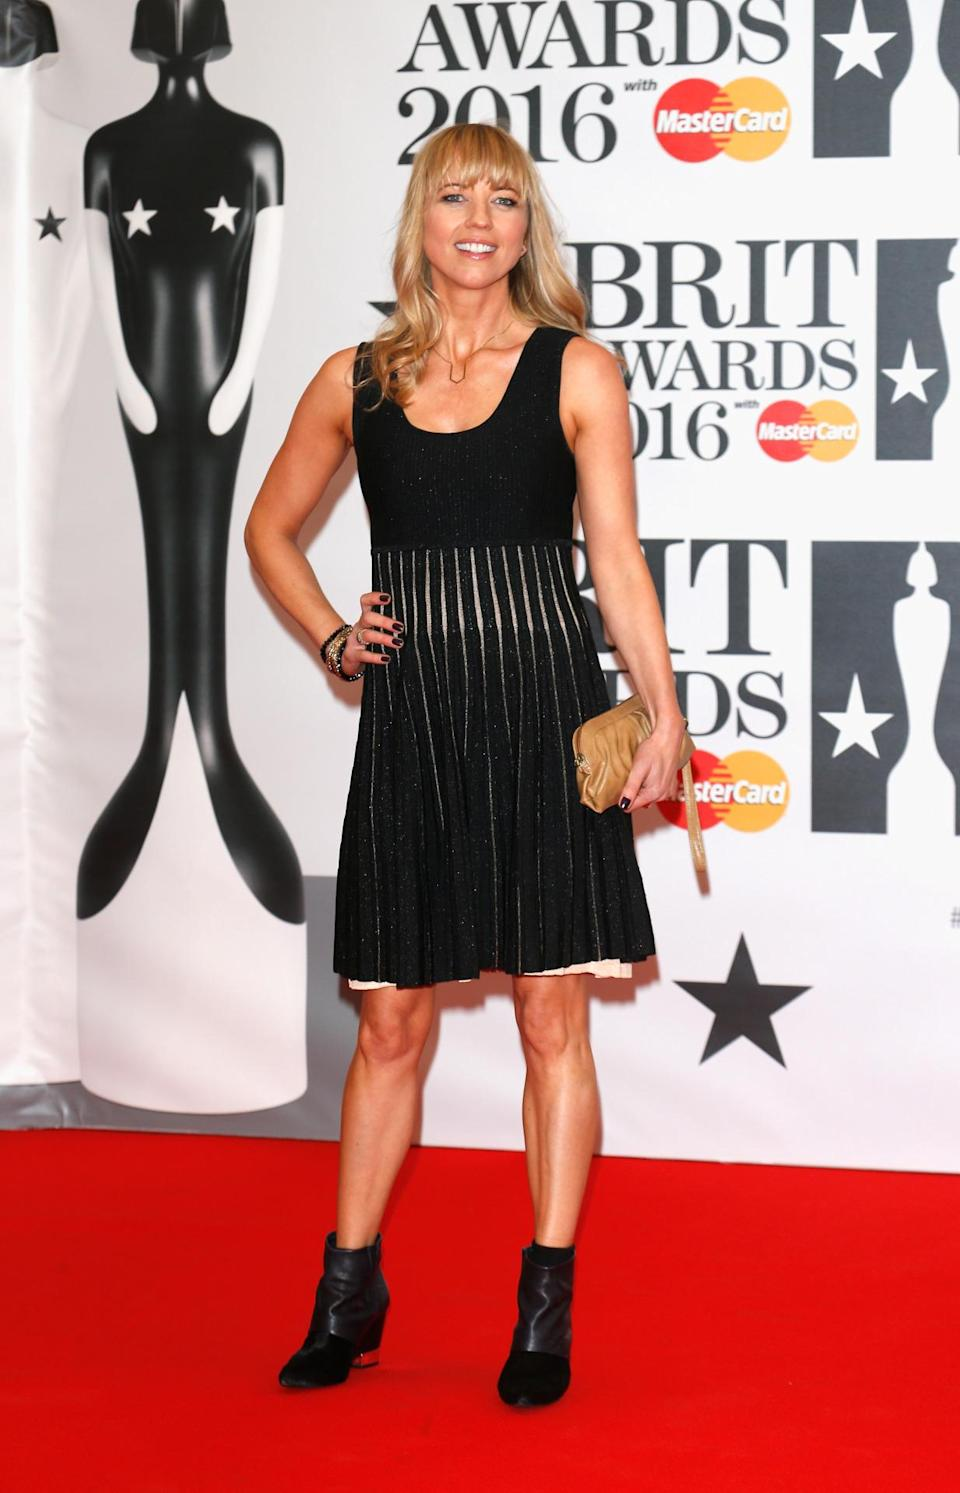 <p>The Radio 1 DJ opted for an edgy LBD and ankle boots combo.<i> [Photo: Getty]</i></p>